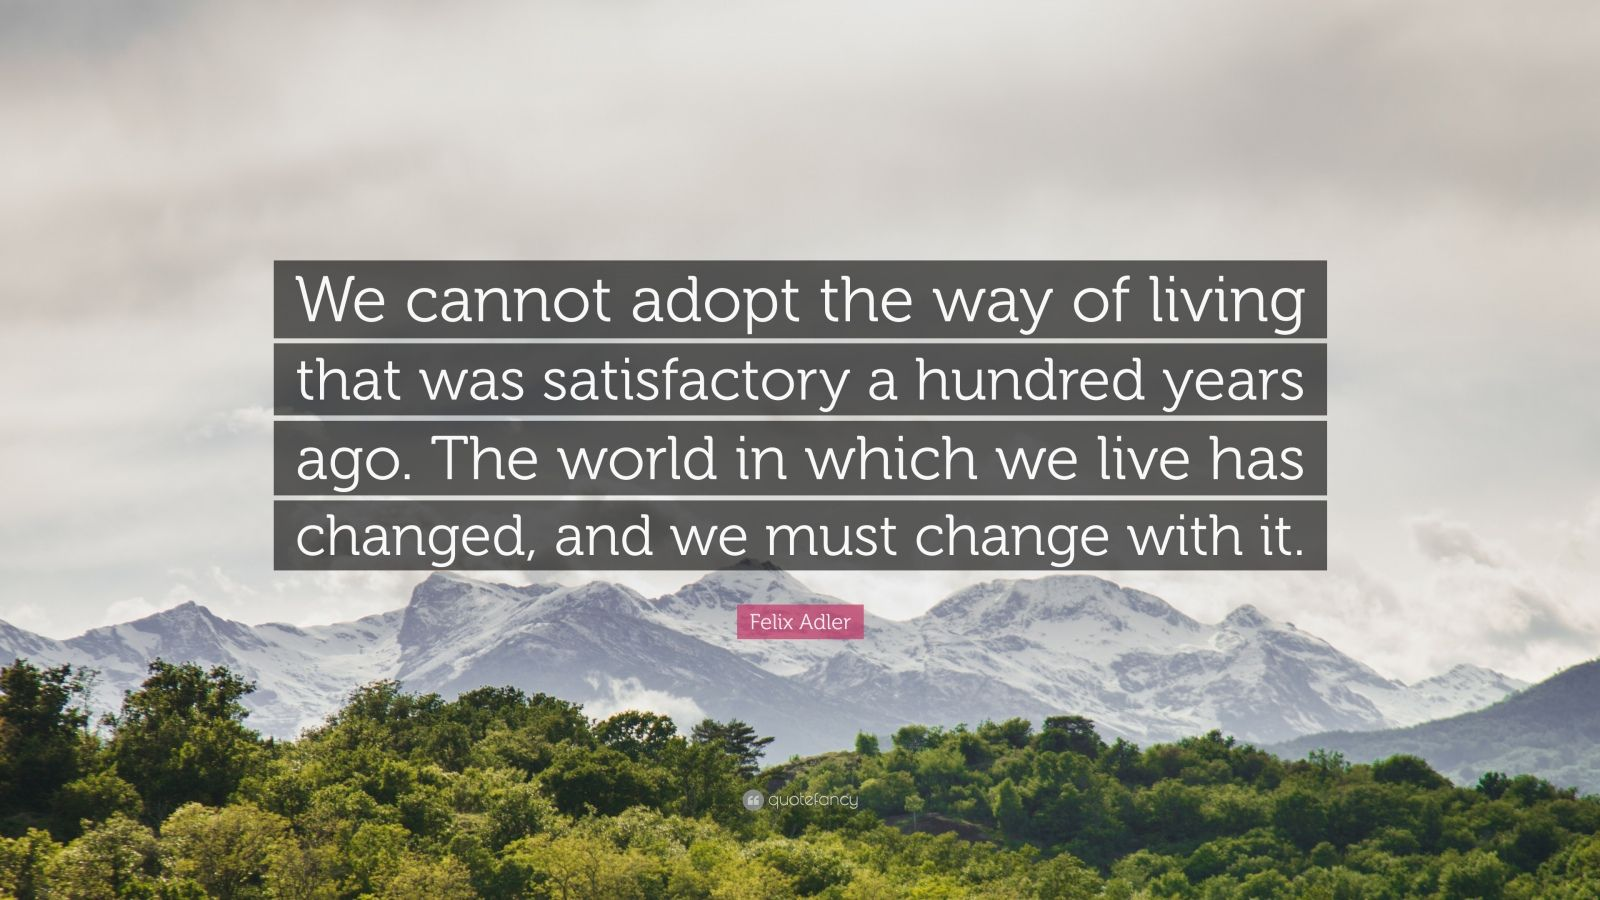 """Felix Adler Quote: """"We cannot adopt the way of living that was satisfactory a hundred years ago. The world in which we live has changed, and we must change with it."""""""